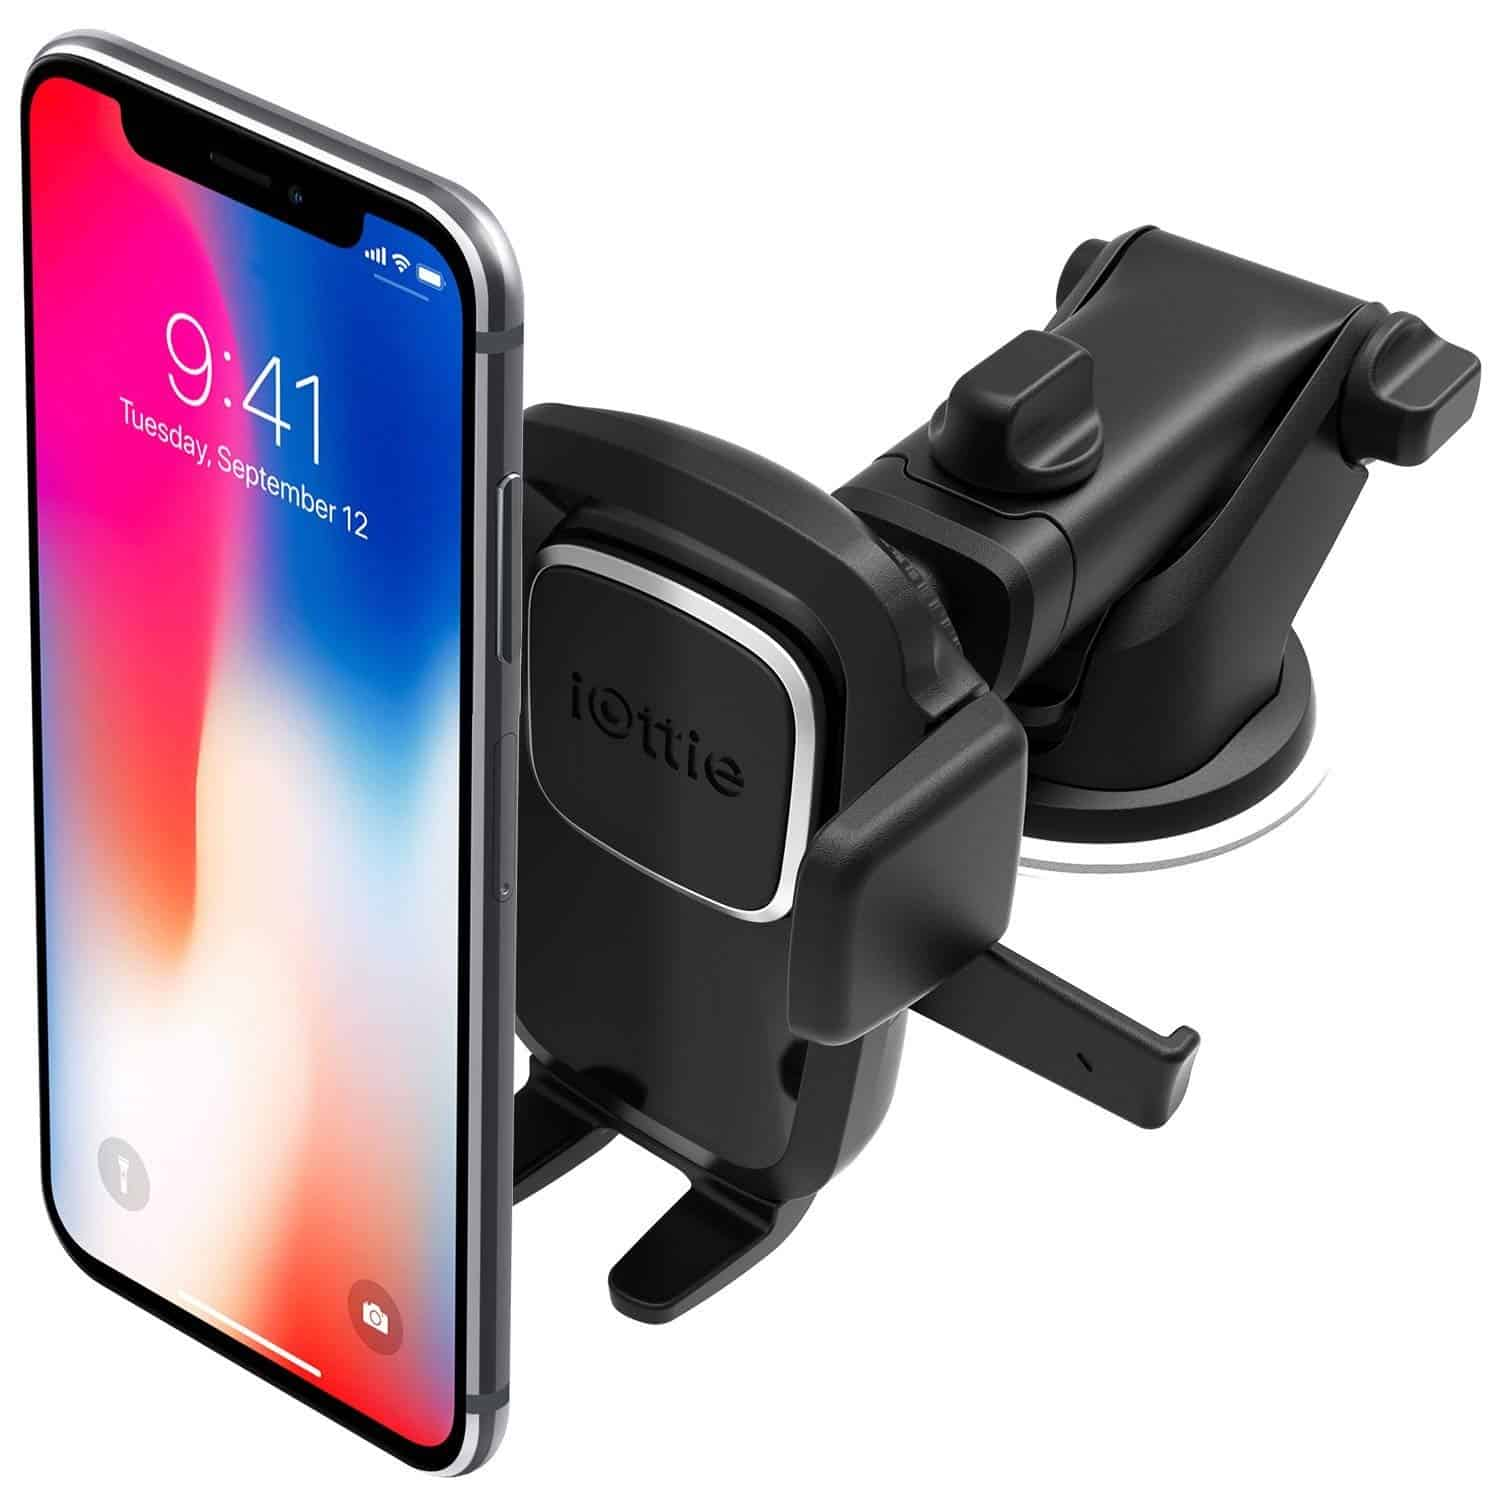 iOttie Easy Touch 4 Windshield mount for phone